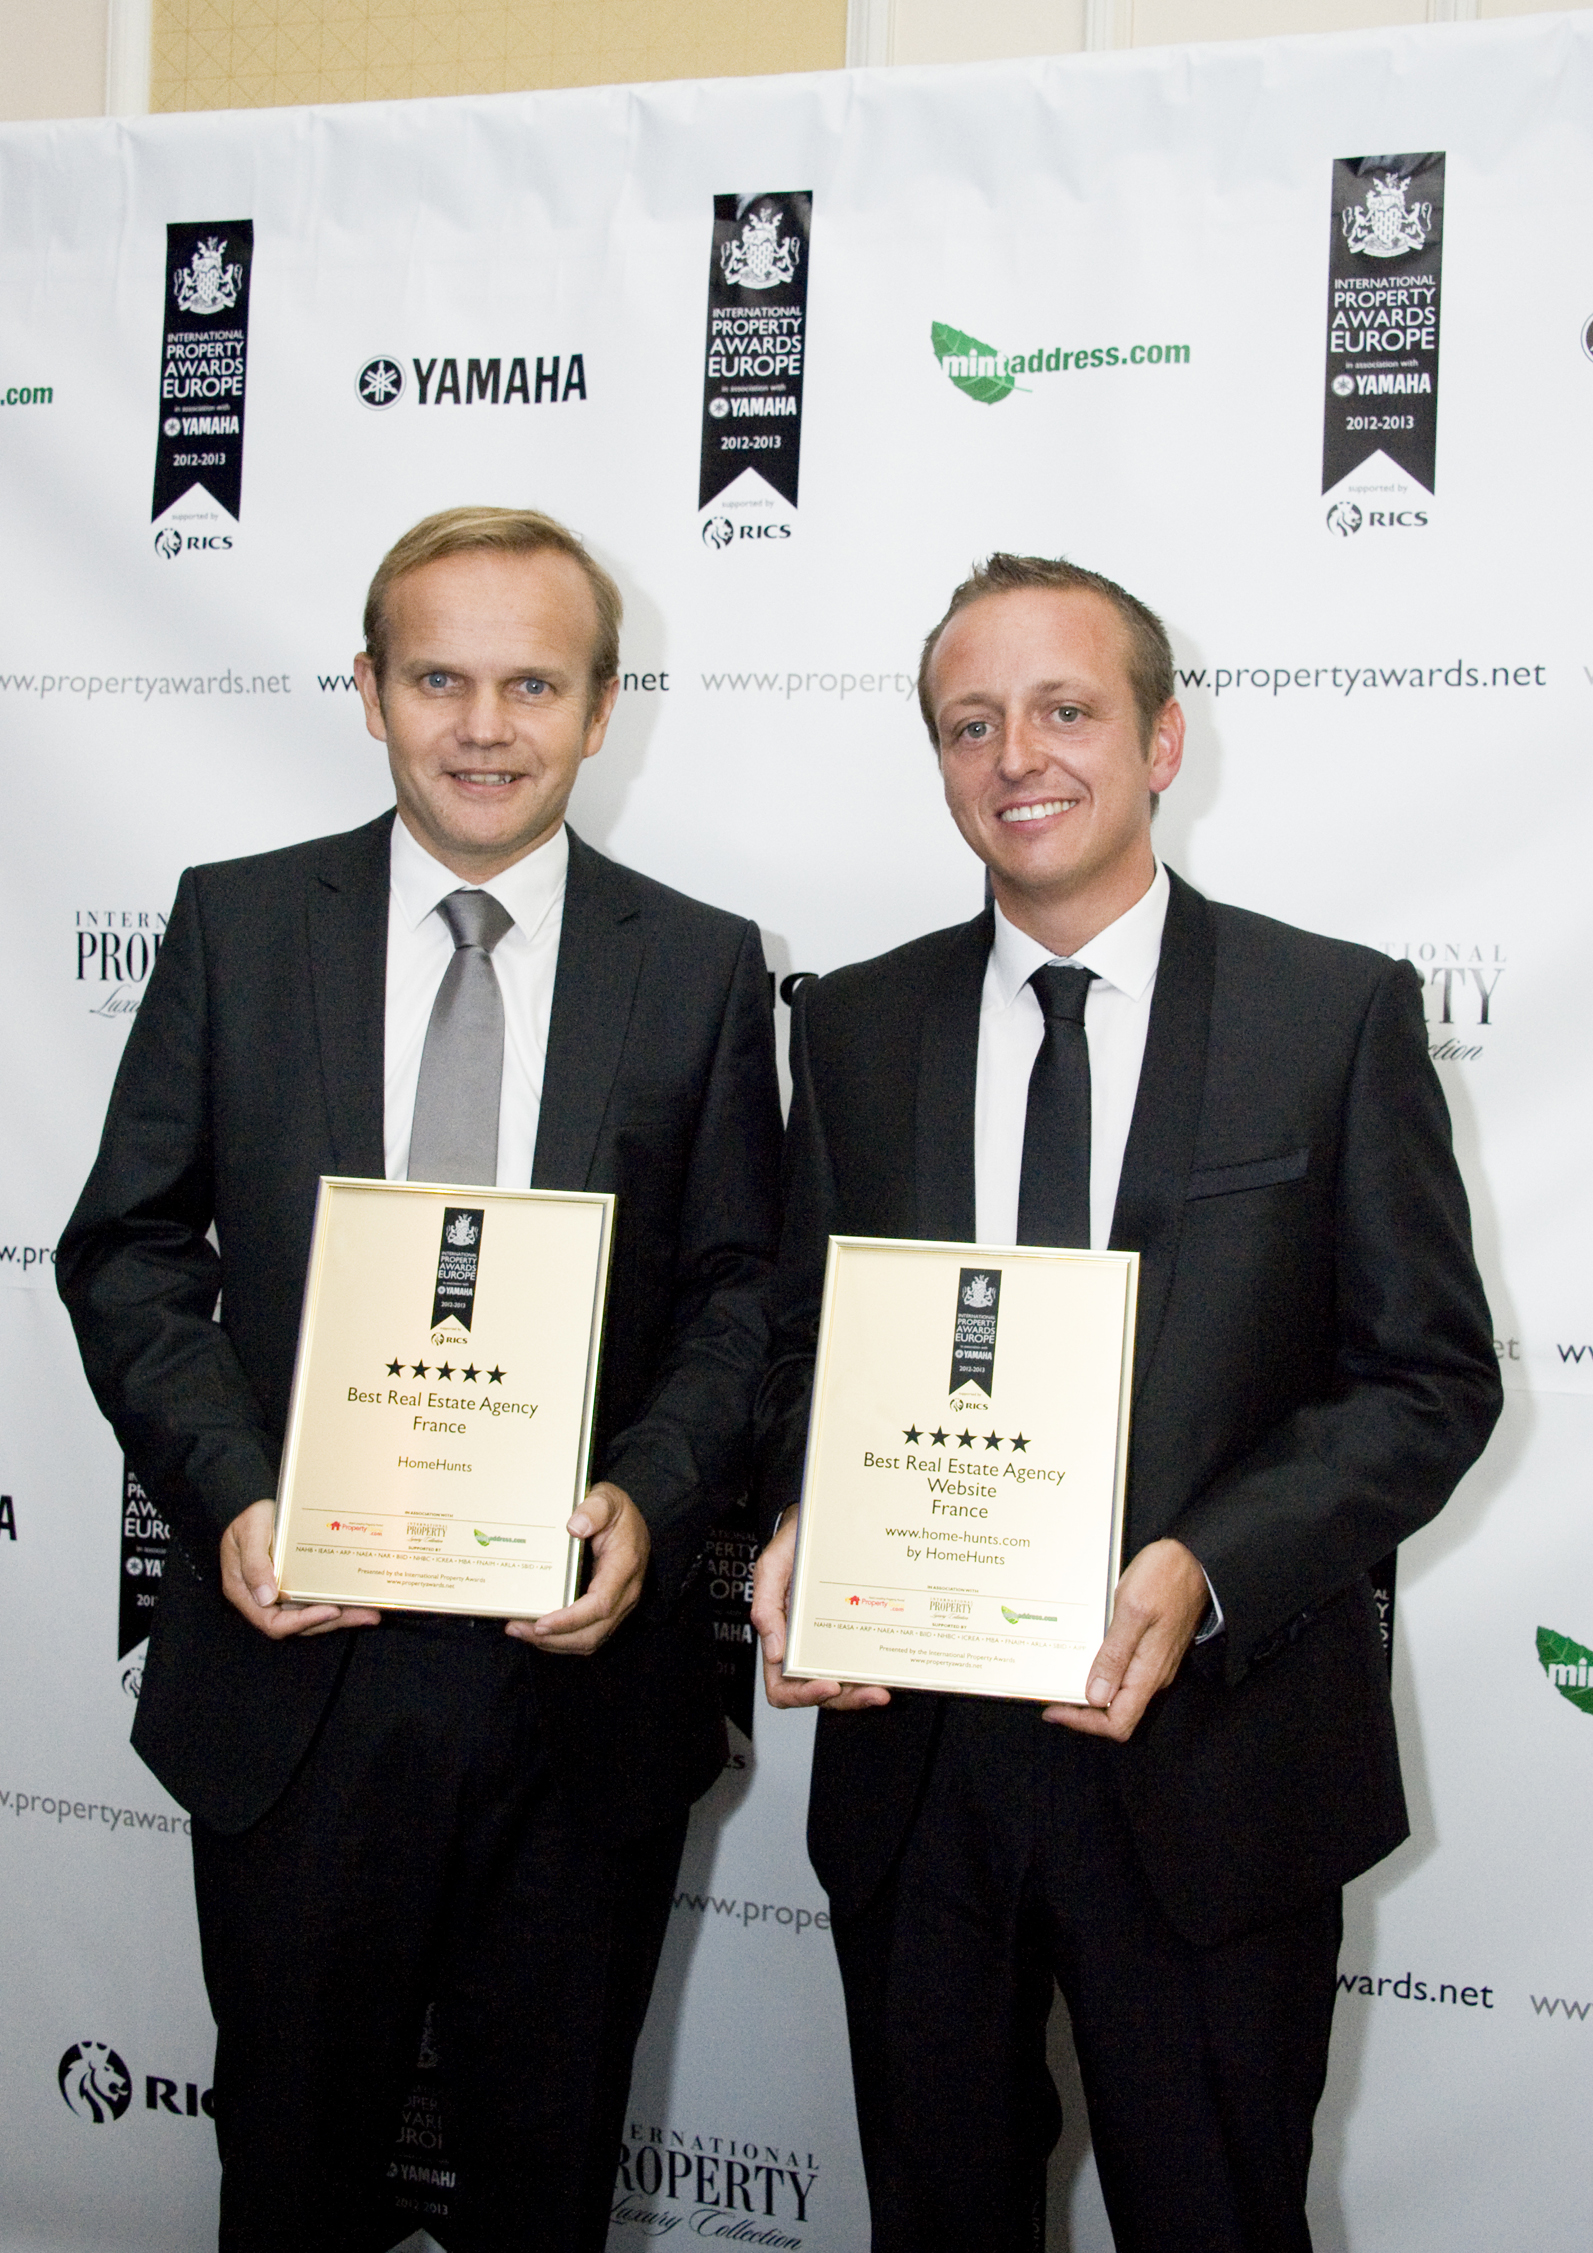 Home Hunts announced as double winner at the International Property Awards 2013/14